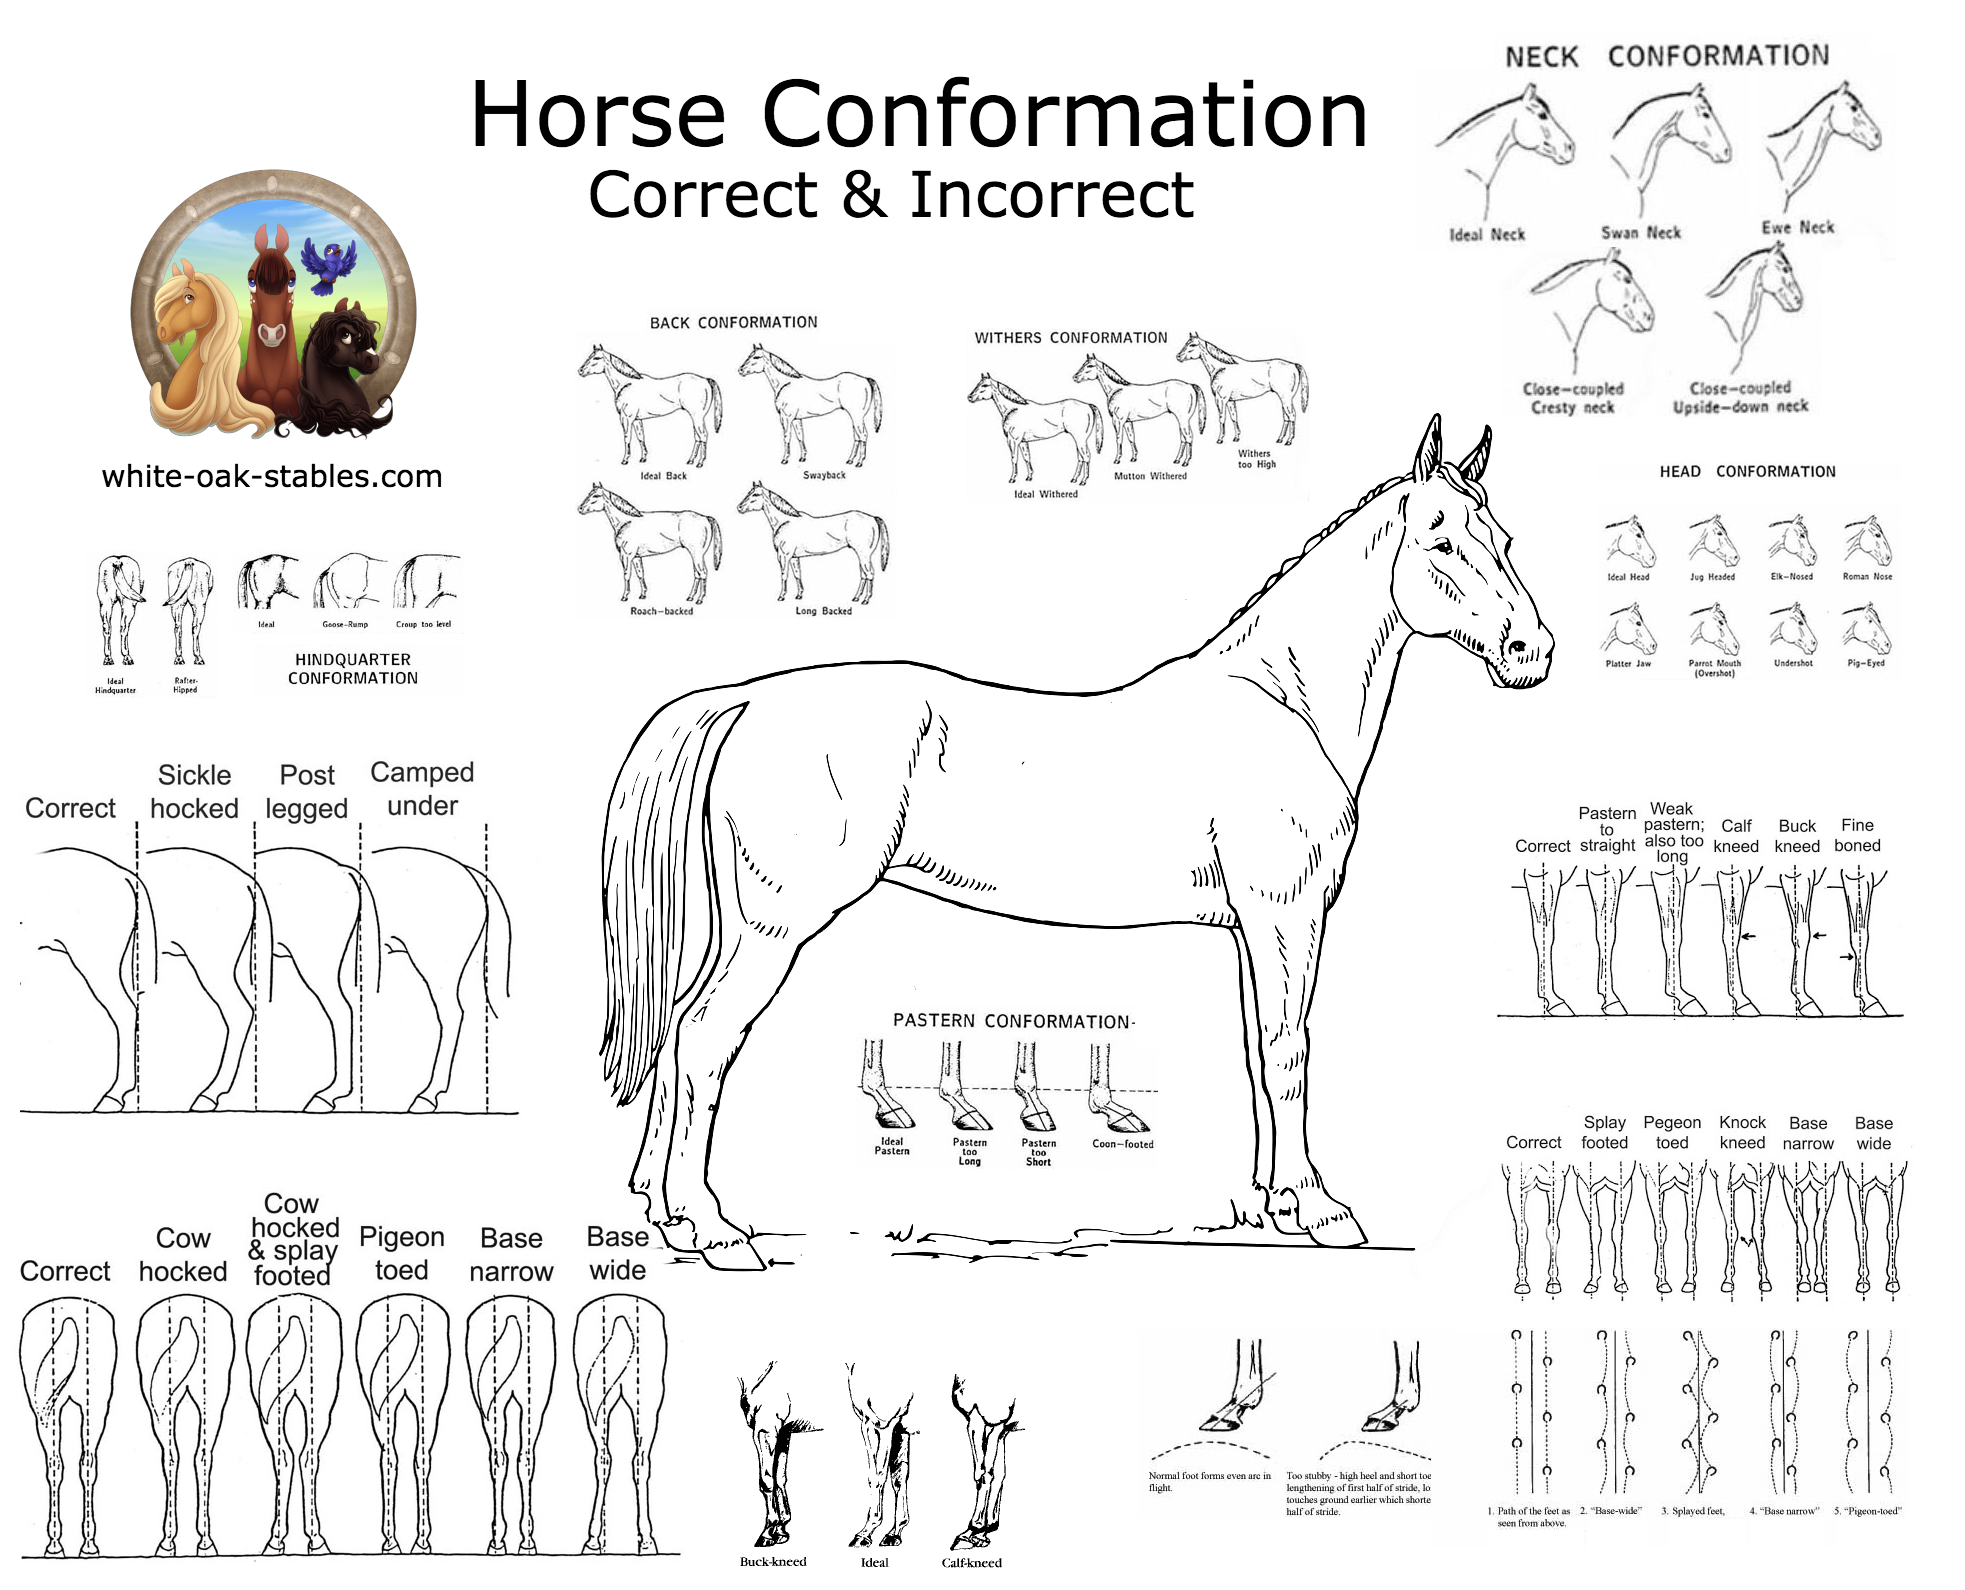 horse neck diagram how to wire a switched outlet white oak stables by appointment only 25 horseback